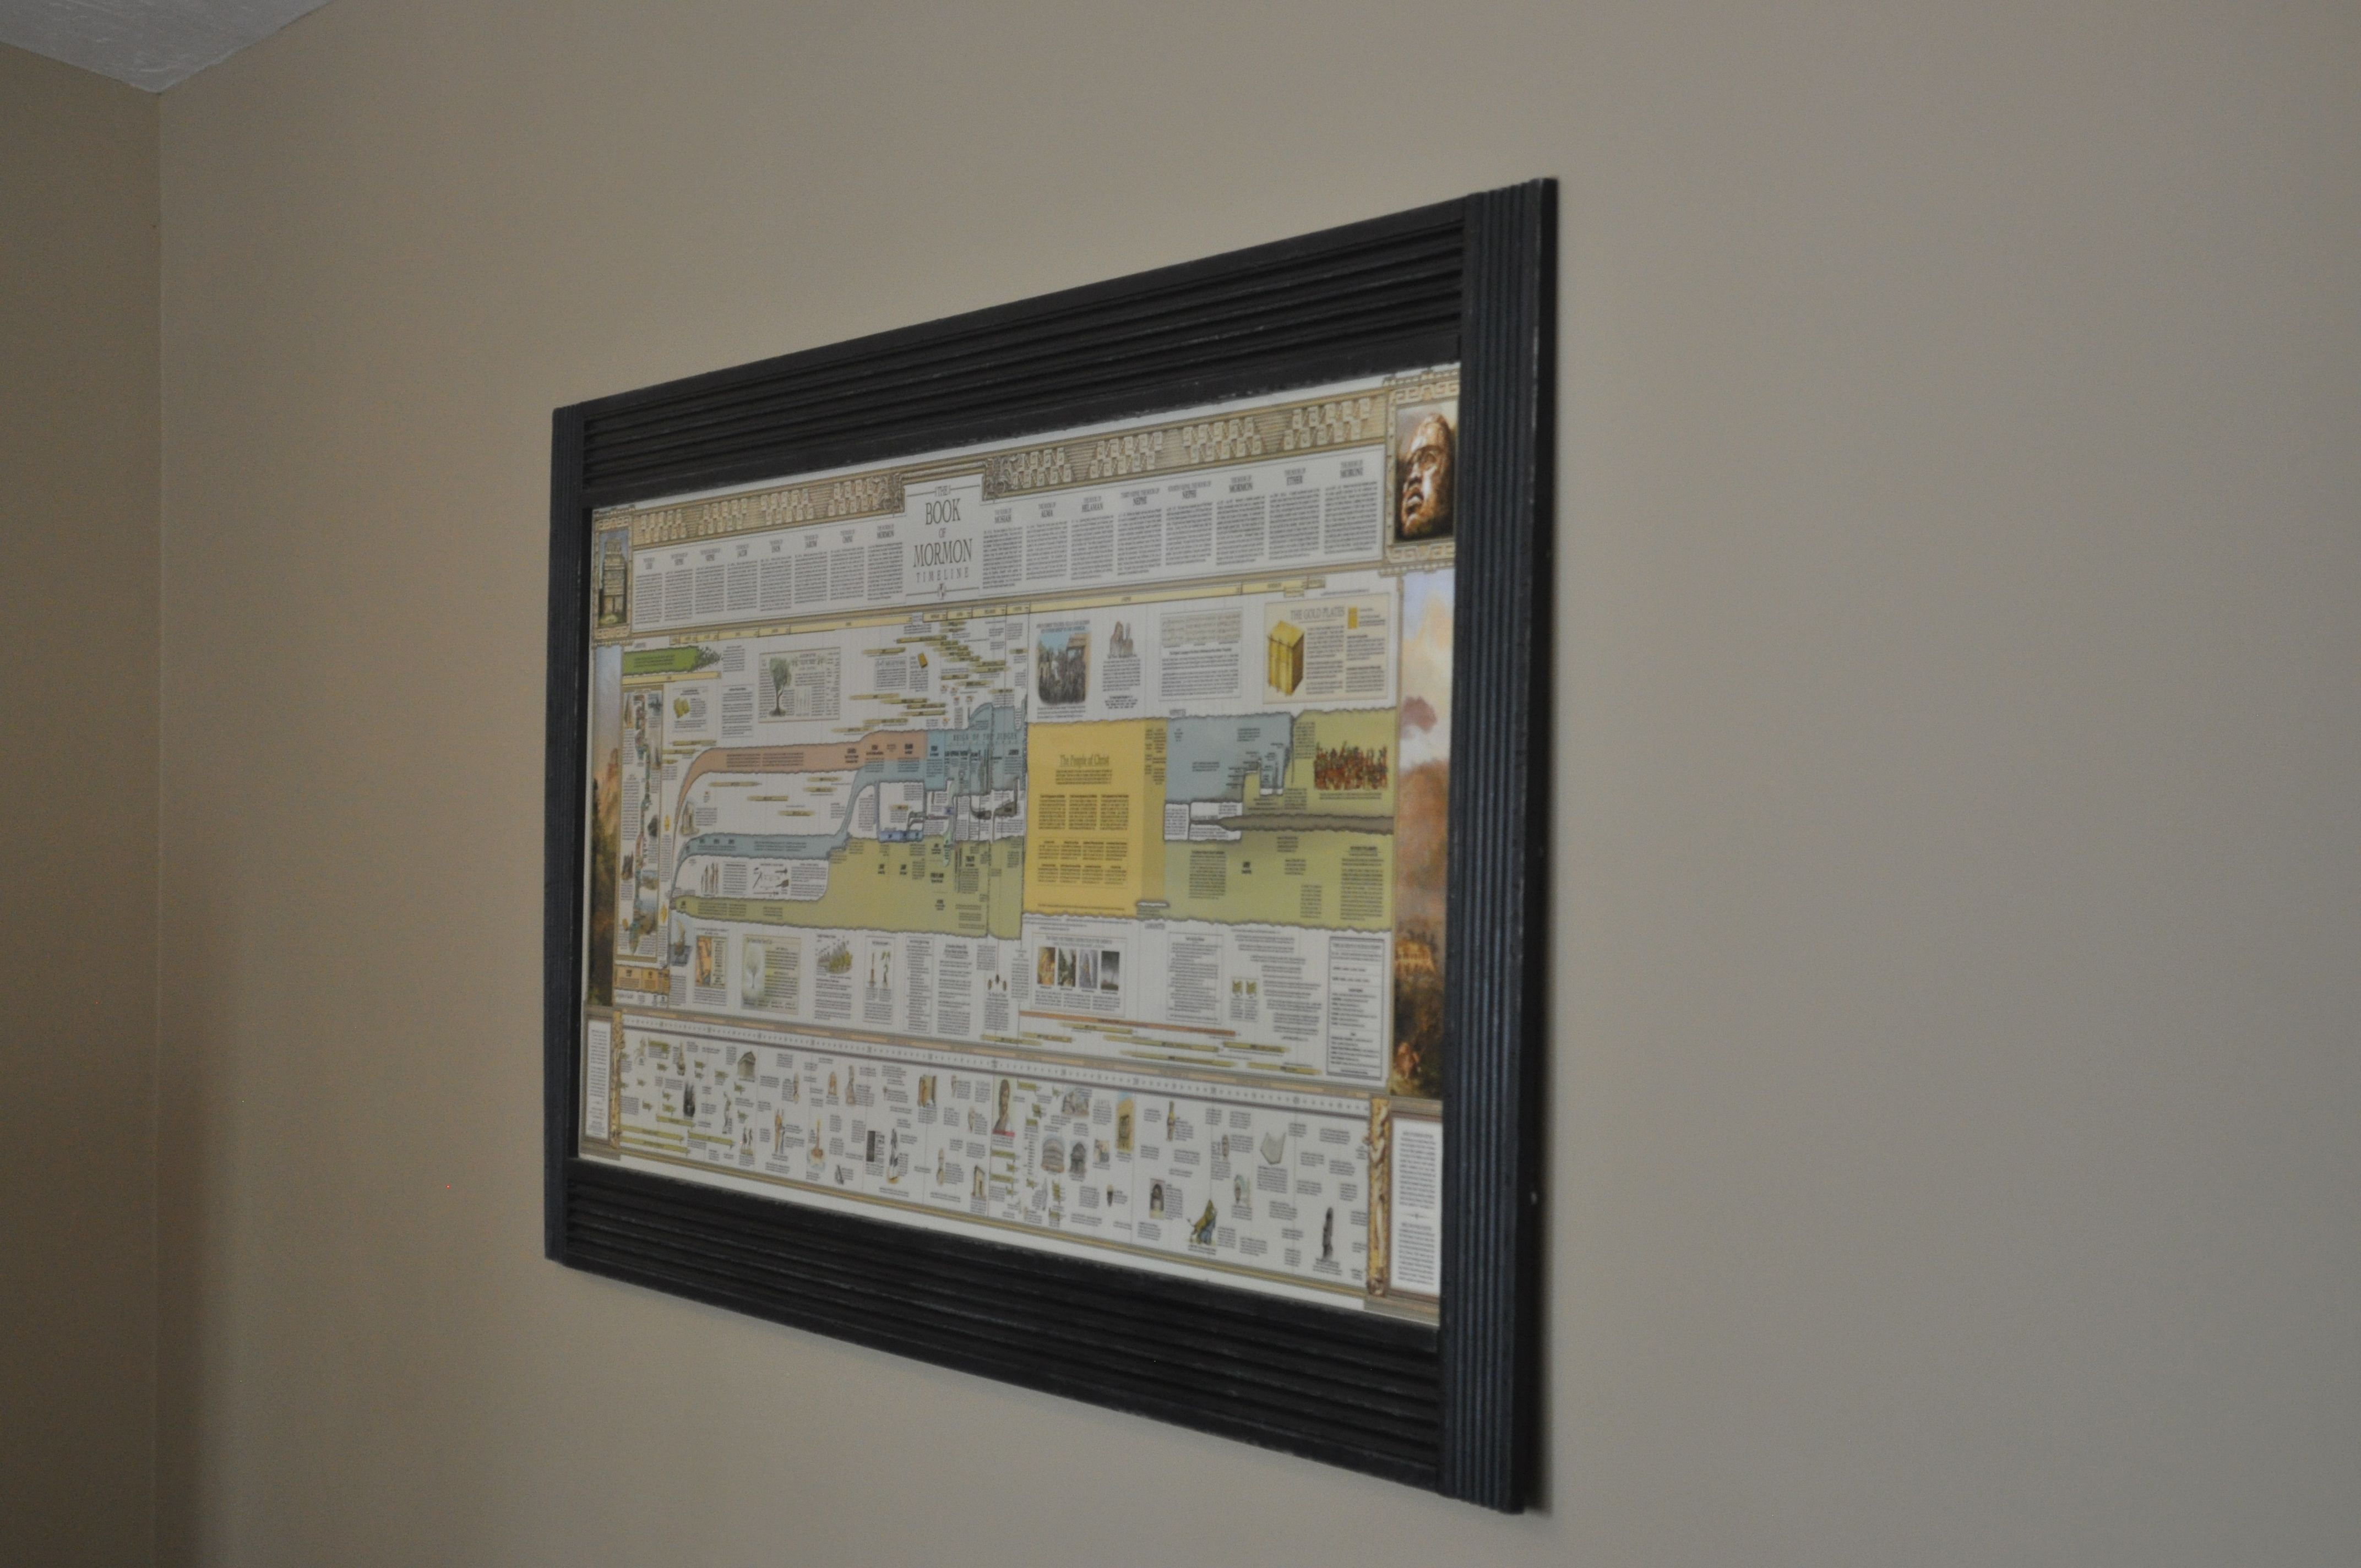 Book of mormon timeline laminated and framed do it yourself book of mormon timeline laminated and framed solutioingenieria Images